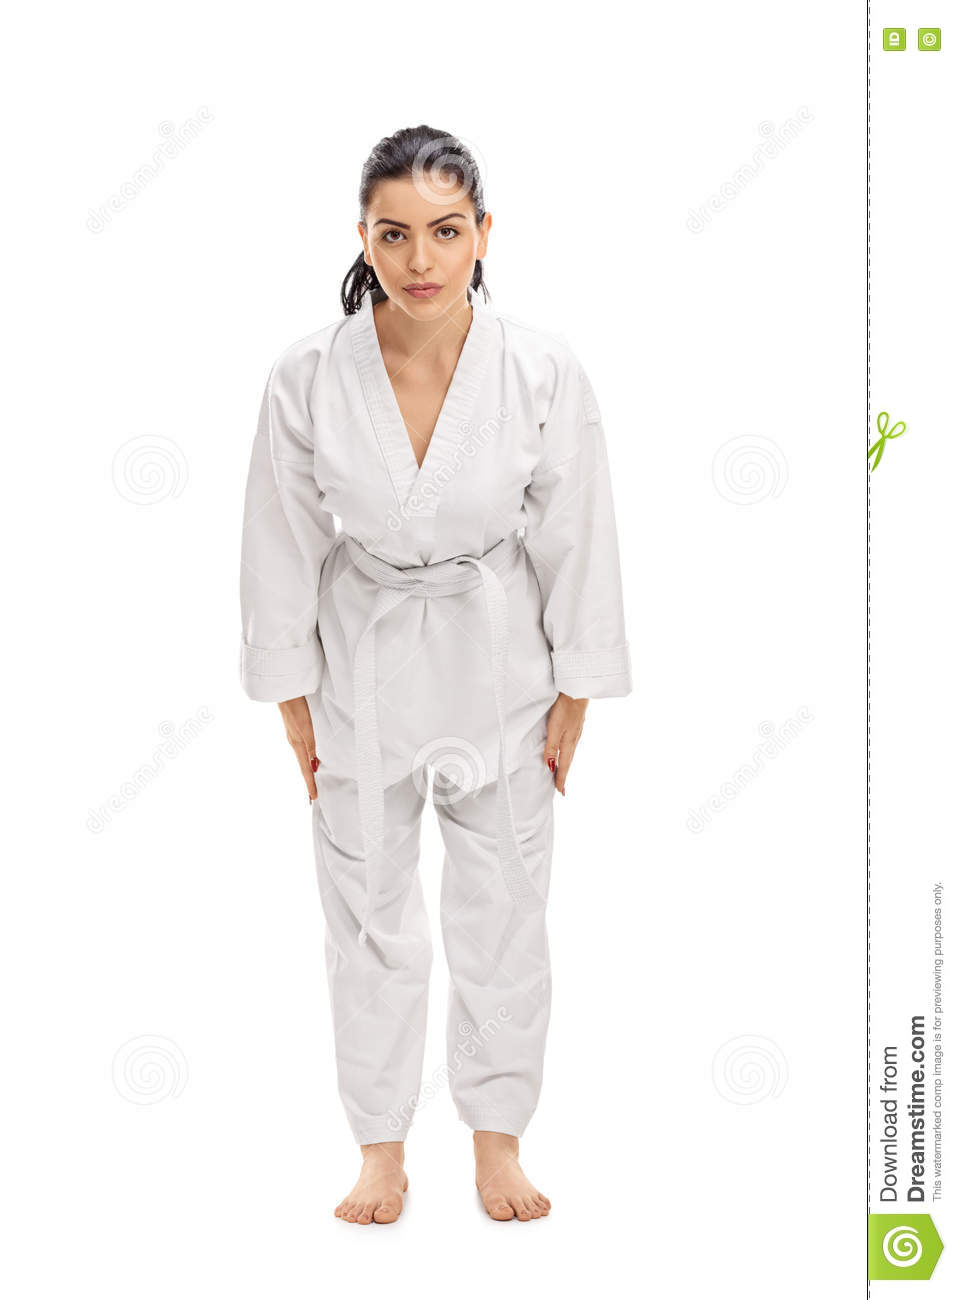 Female martial artist bow down and greeting someone stock photo download female martial artist bow down and greeting someone stock photo image of beginner m4hsunfo